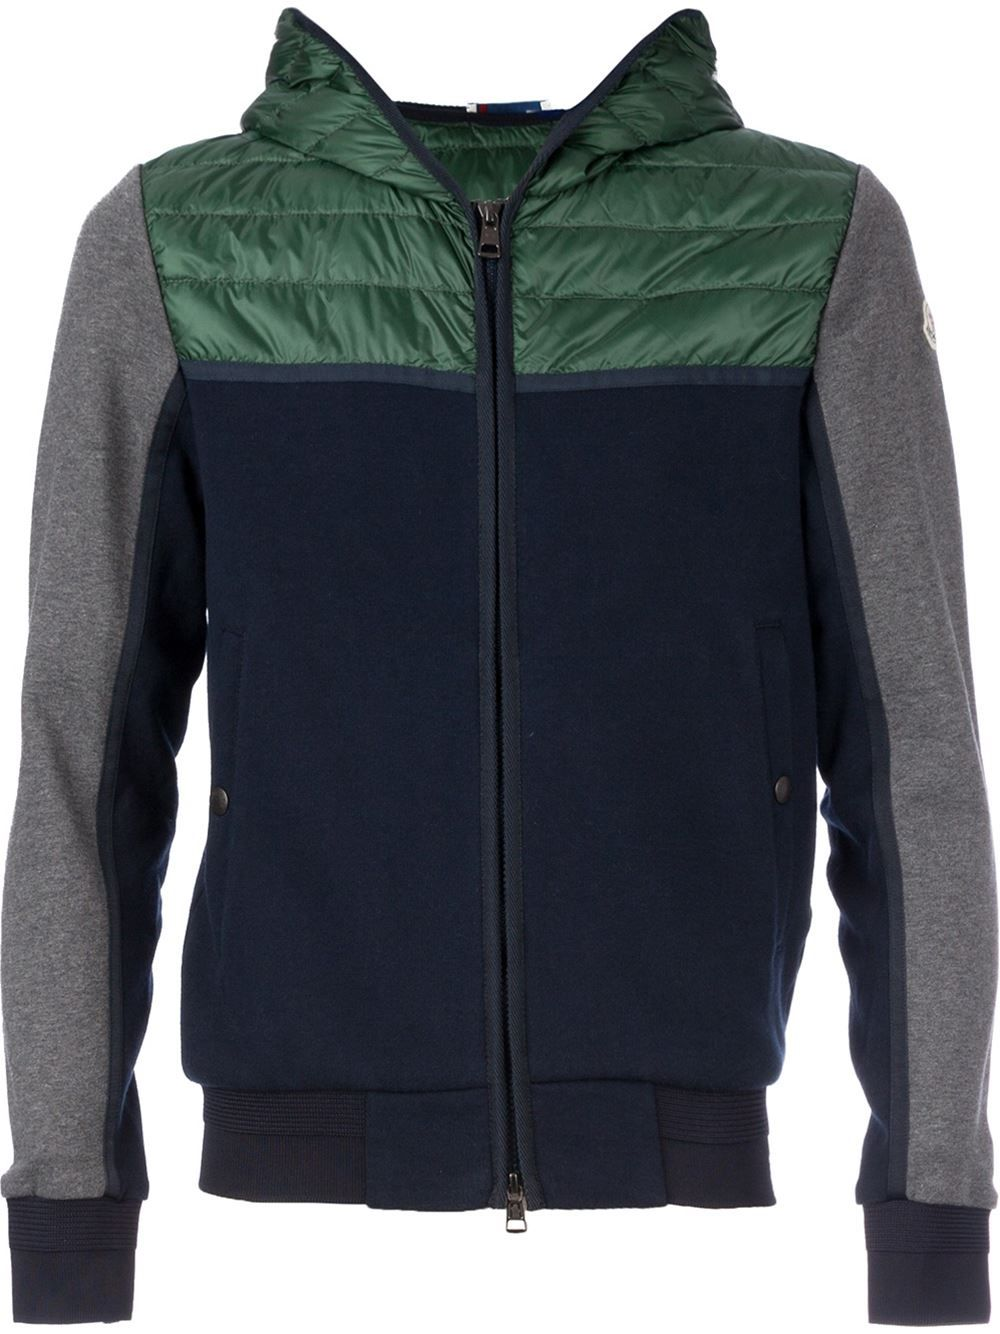 Moncler 'julio' Padded Jacket